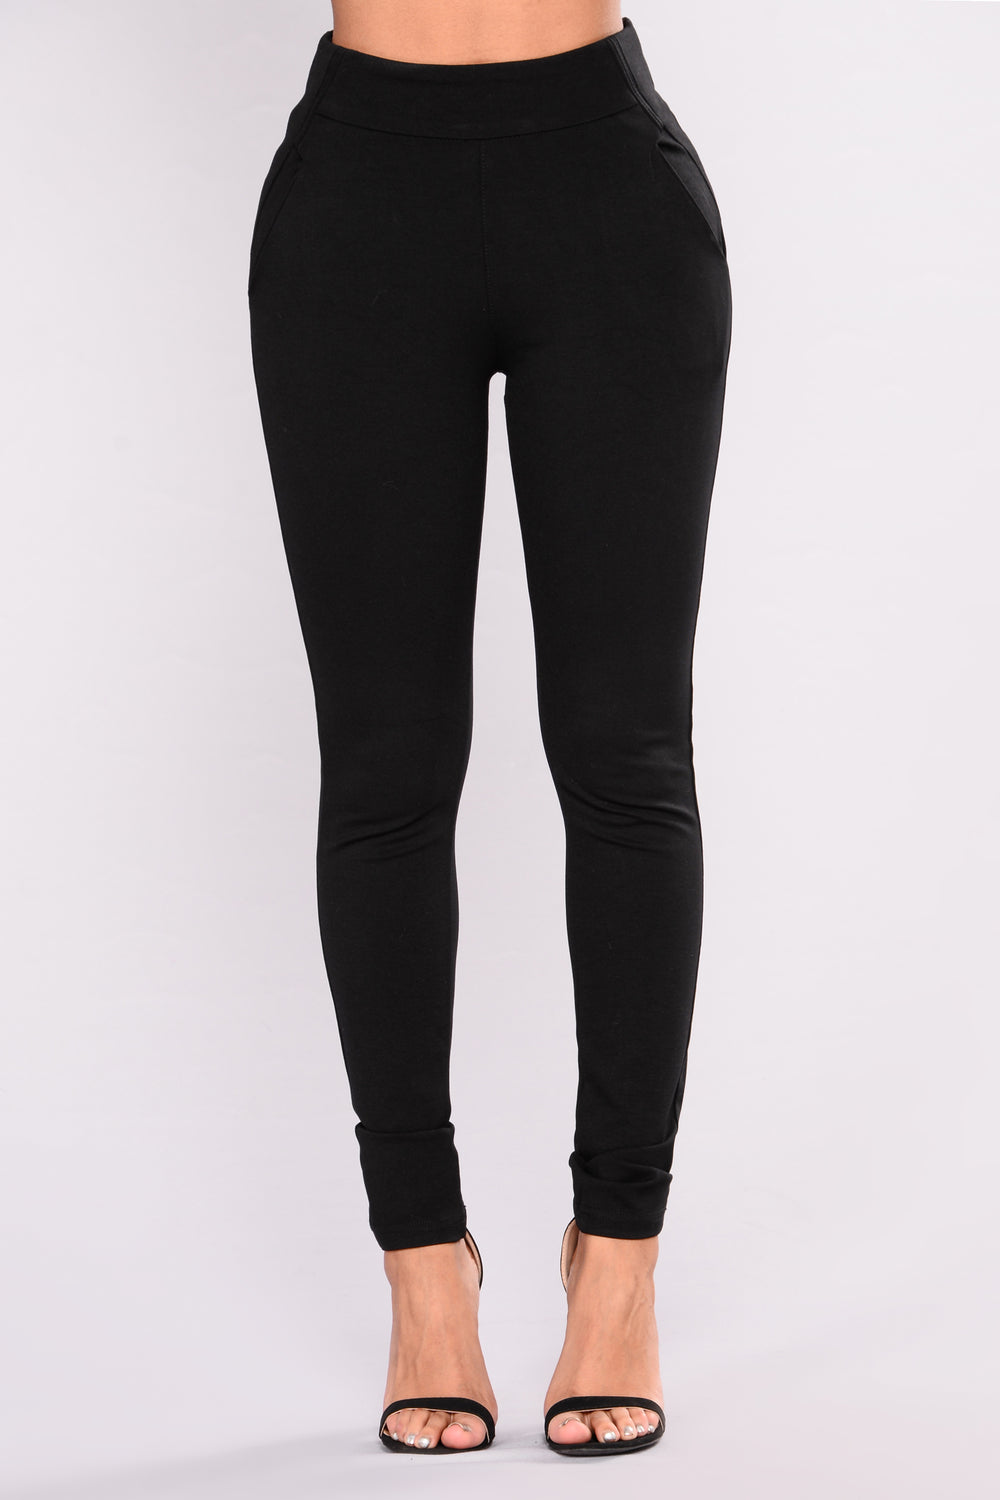 Kelli Ponte Pants - Black